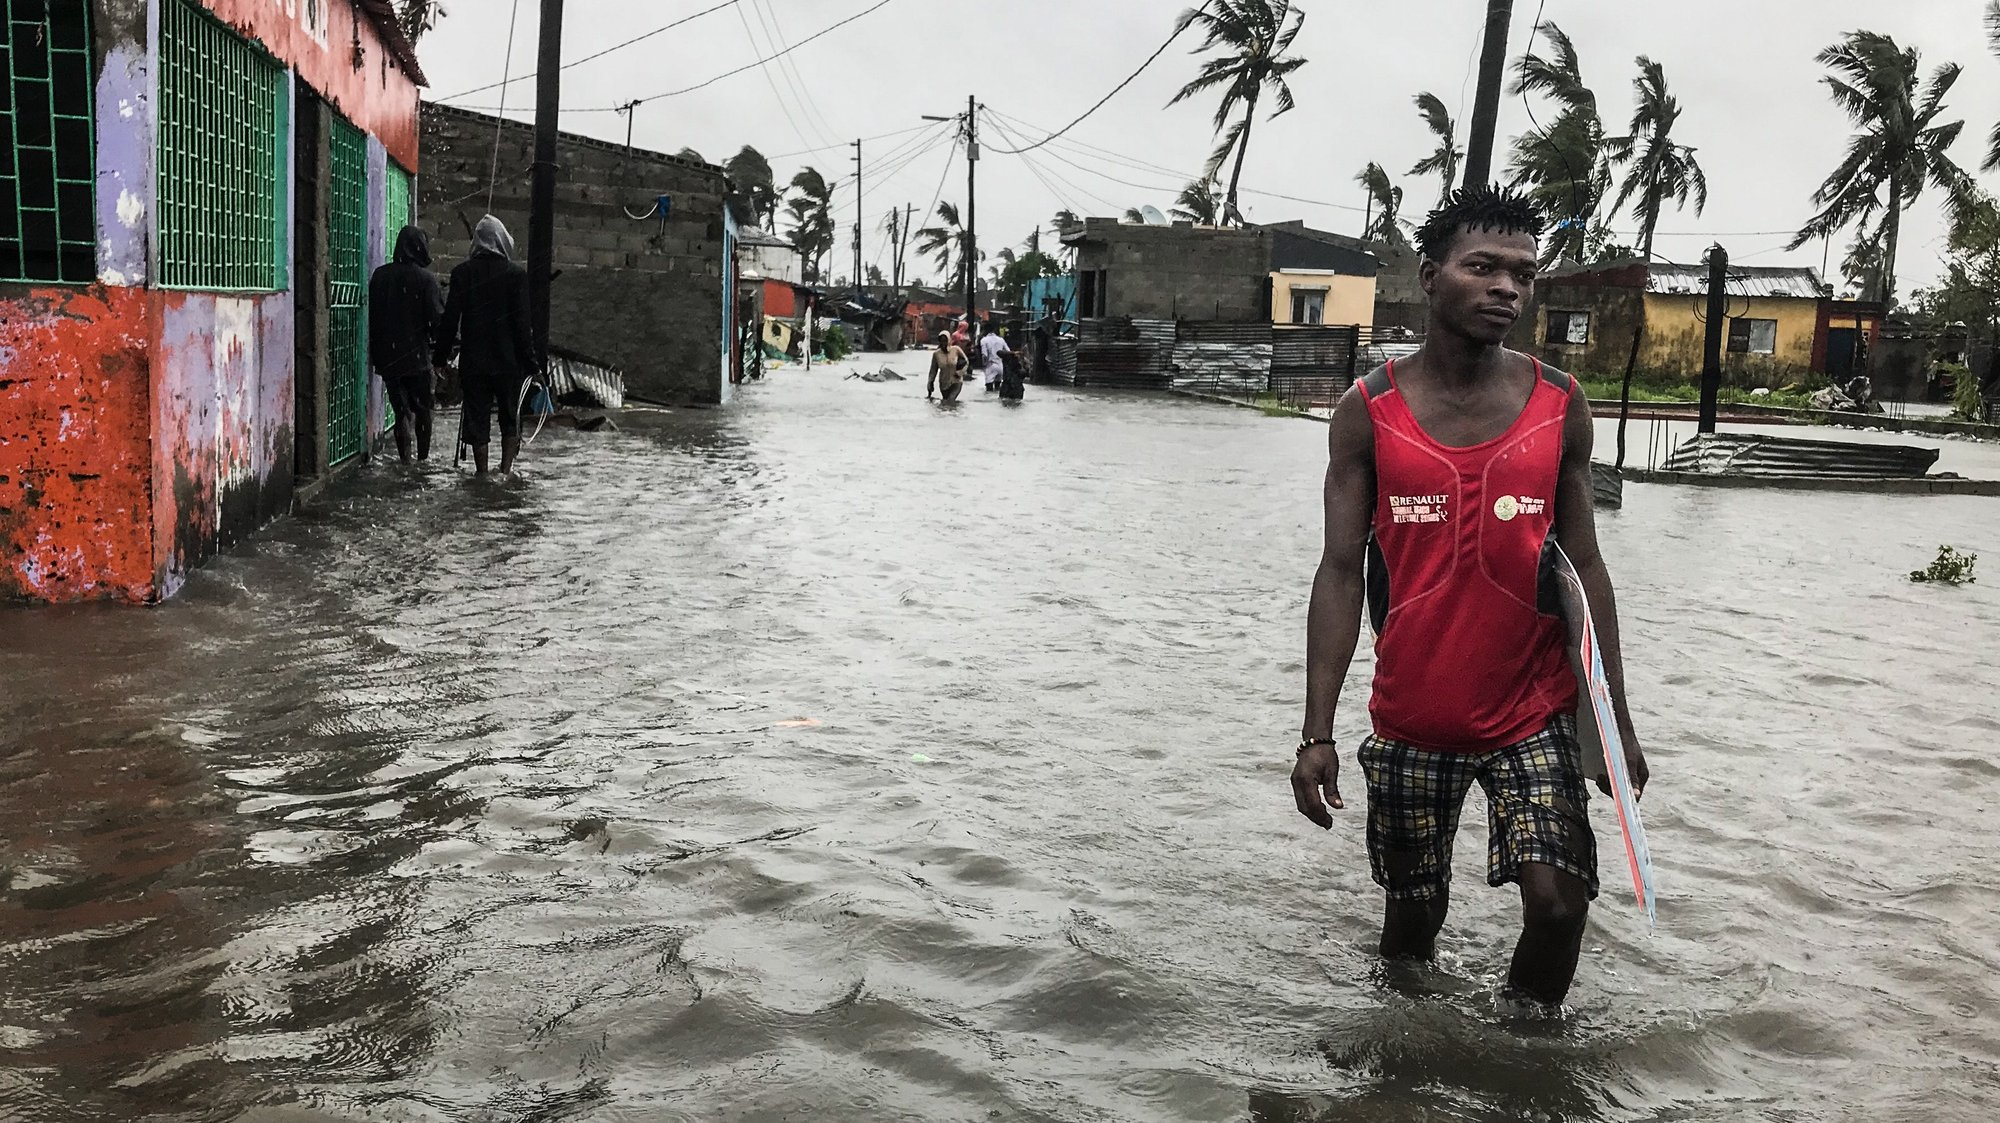 epaselect epa08959345 A man wades through flood water in the city of Beira, Mozambique, 23 January 2021, after the passage of Tropical Cyclone Eloise. The city of Beira presented signs of destruction in all streets on the day, with several flooded neighborhoods with residents circulating with the water around the waist at some points following the passage of Tropical Cyclone Eloise.  EPA/JOSE JECO